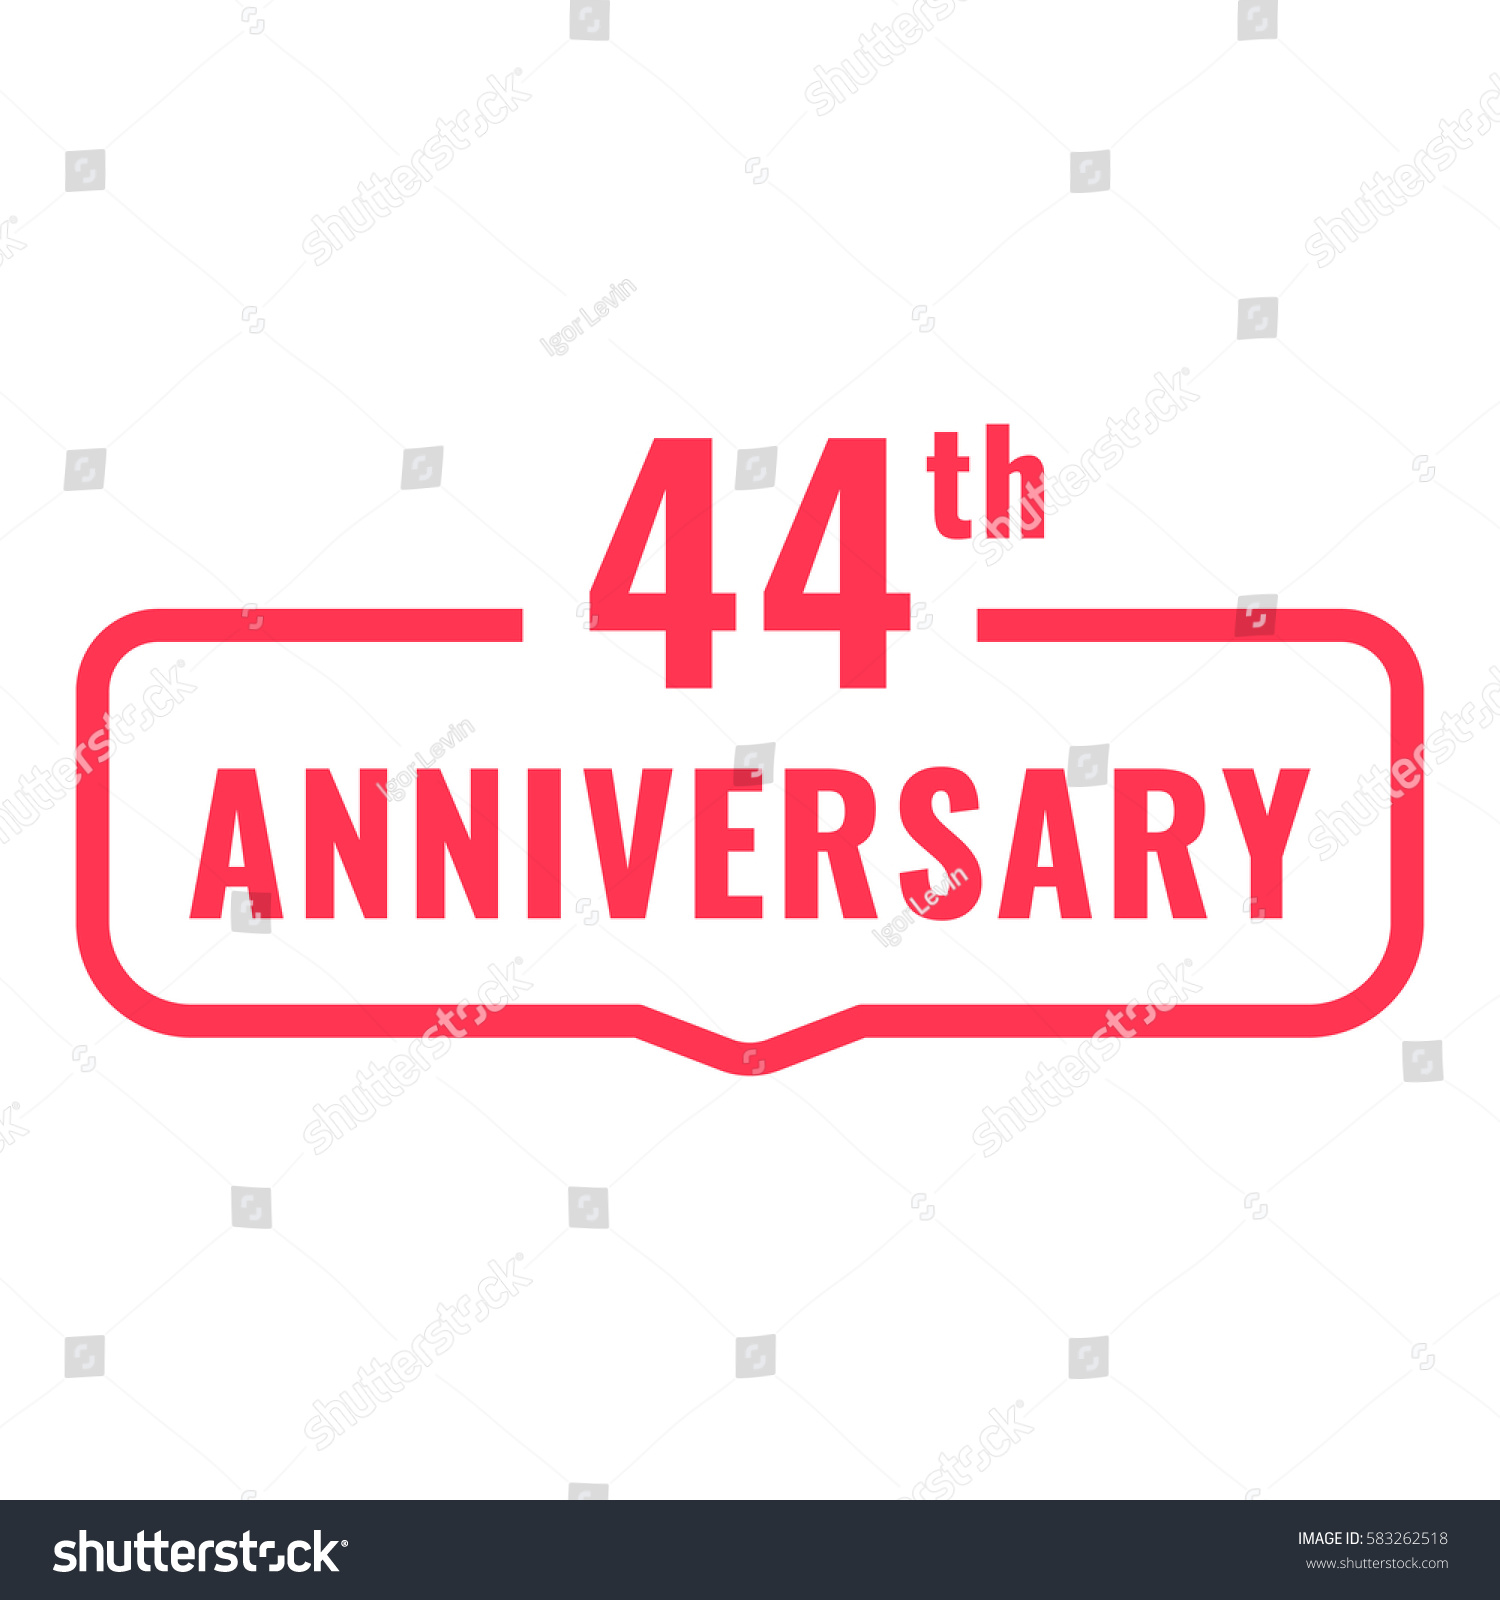 44th anniversary badge icon logo flat stock vector 583262518 44th anniversary badge icon logo flat vector illustration on white background can biocorpaavc Gallery